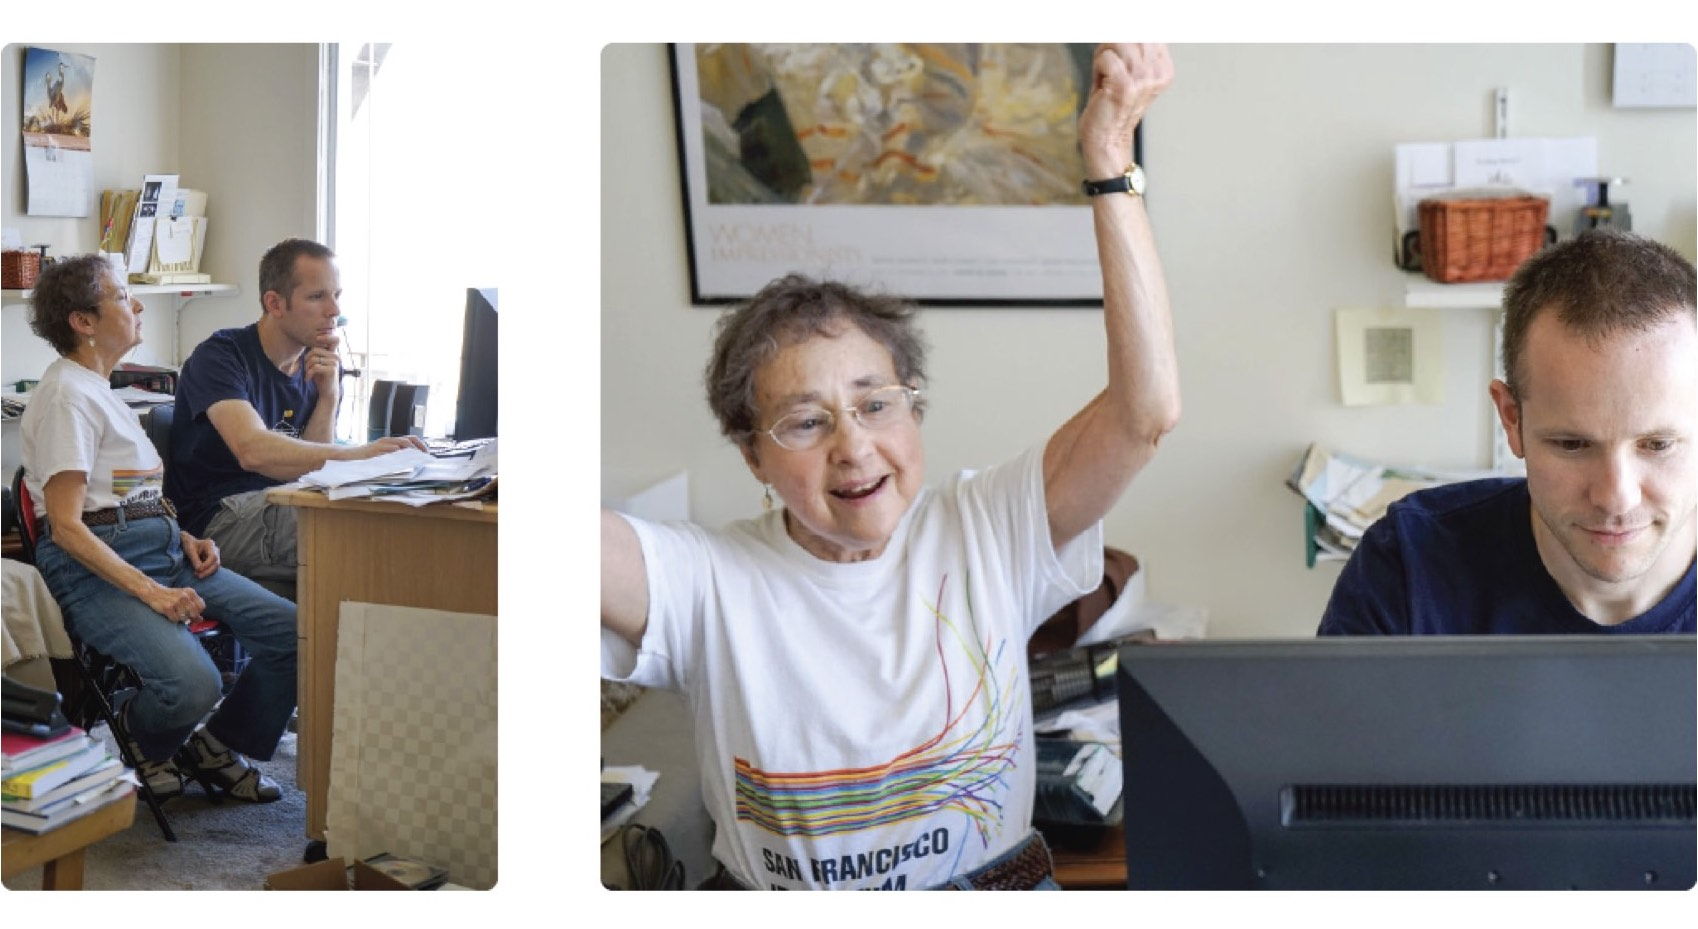 Cam Ring, one of Honor's co-founders, helps Linda Lewin set-up her computer and internet connection